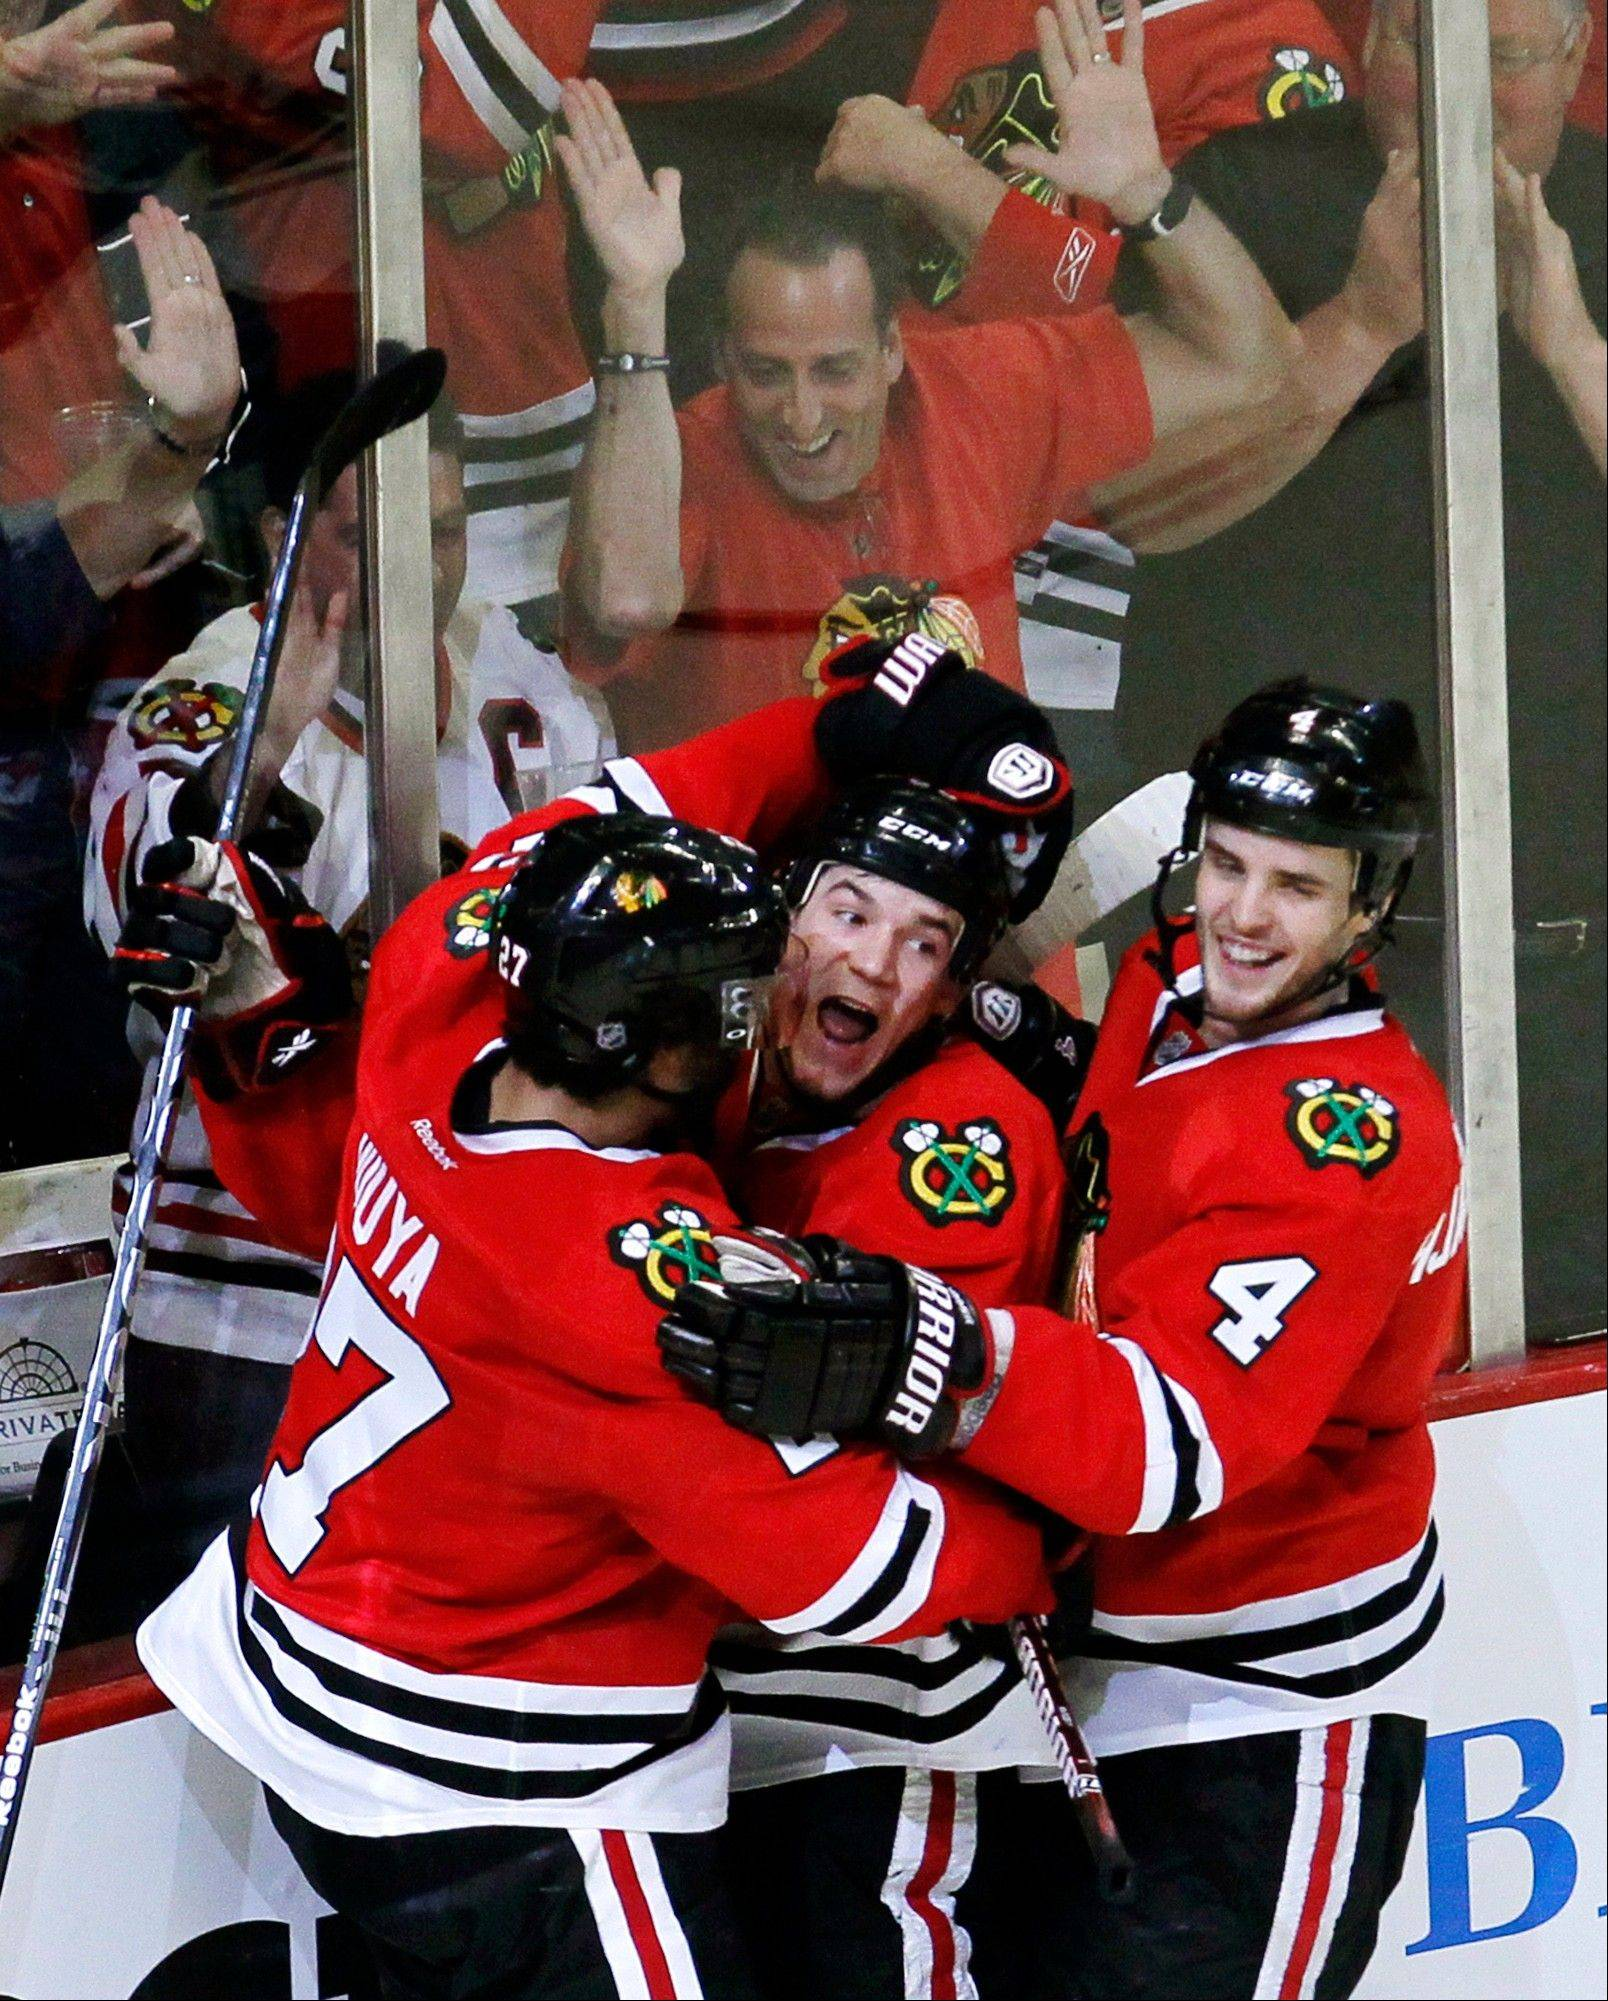 Blackhawks defenseman Johnny Oduya (27) and defenseman Niklas Hjalmarsson (4) celebrate Wednesday with Andrew Shaw, center, after Shaw's game-winning overtime goal against the Vancouver Canucks.